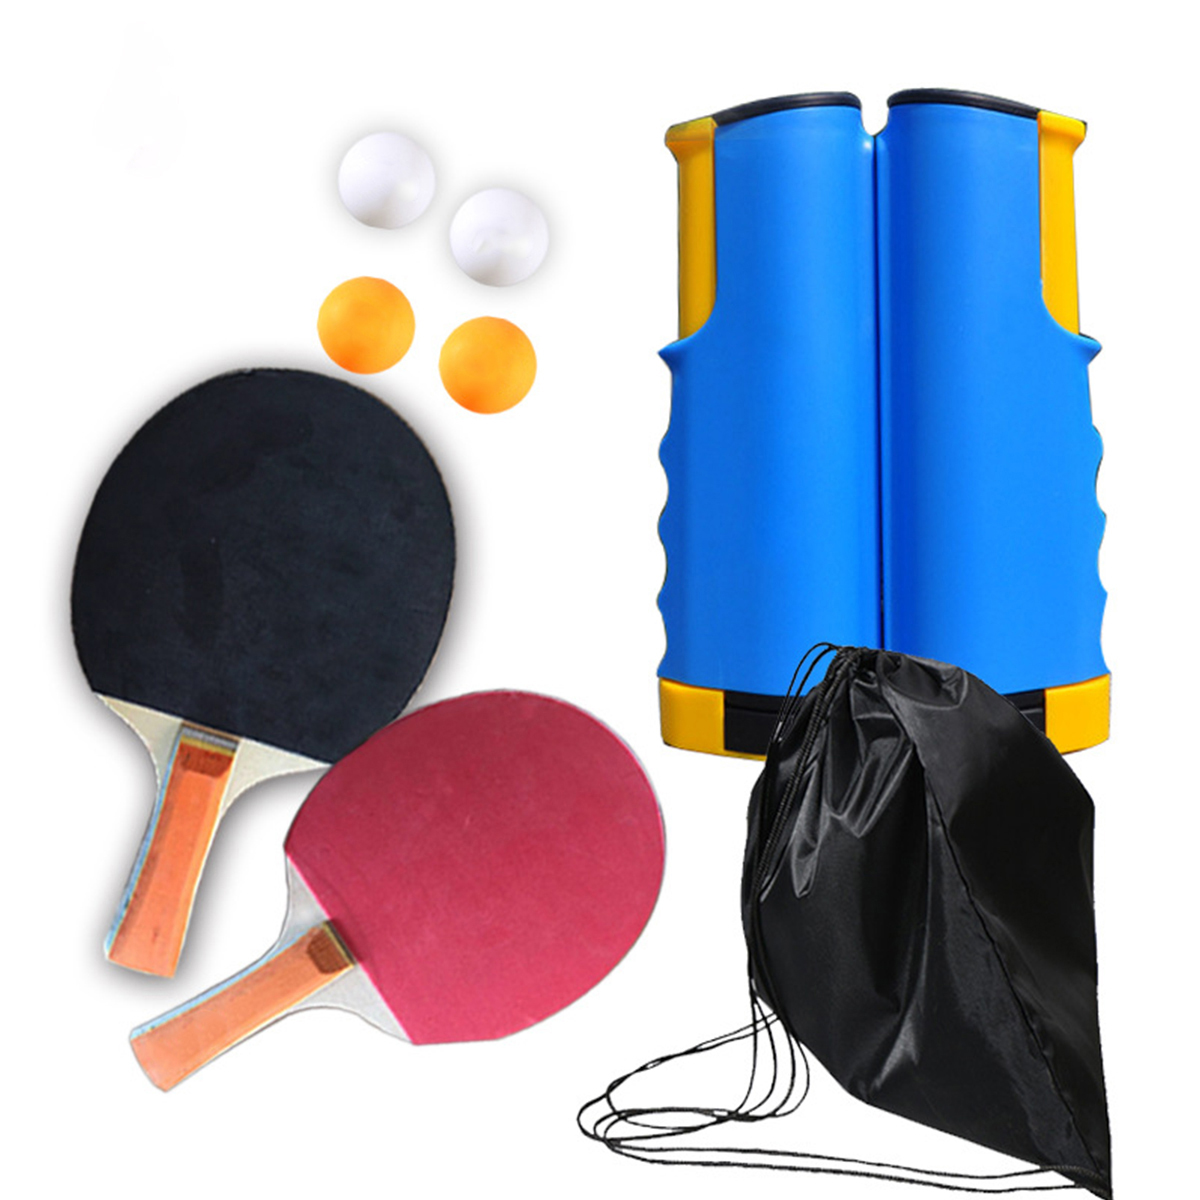 Table Tennis Blade Racket Ping Pong Rubber Paddle Portable Sport Table Tennis Set 1.7M Retractable Net For Workout Trainning